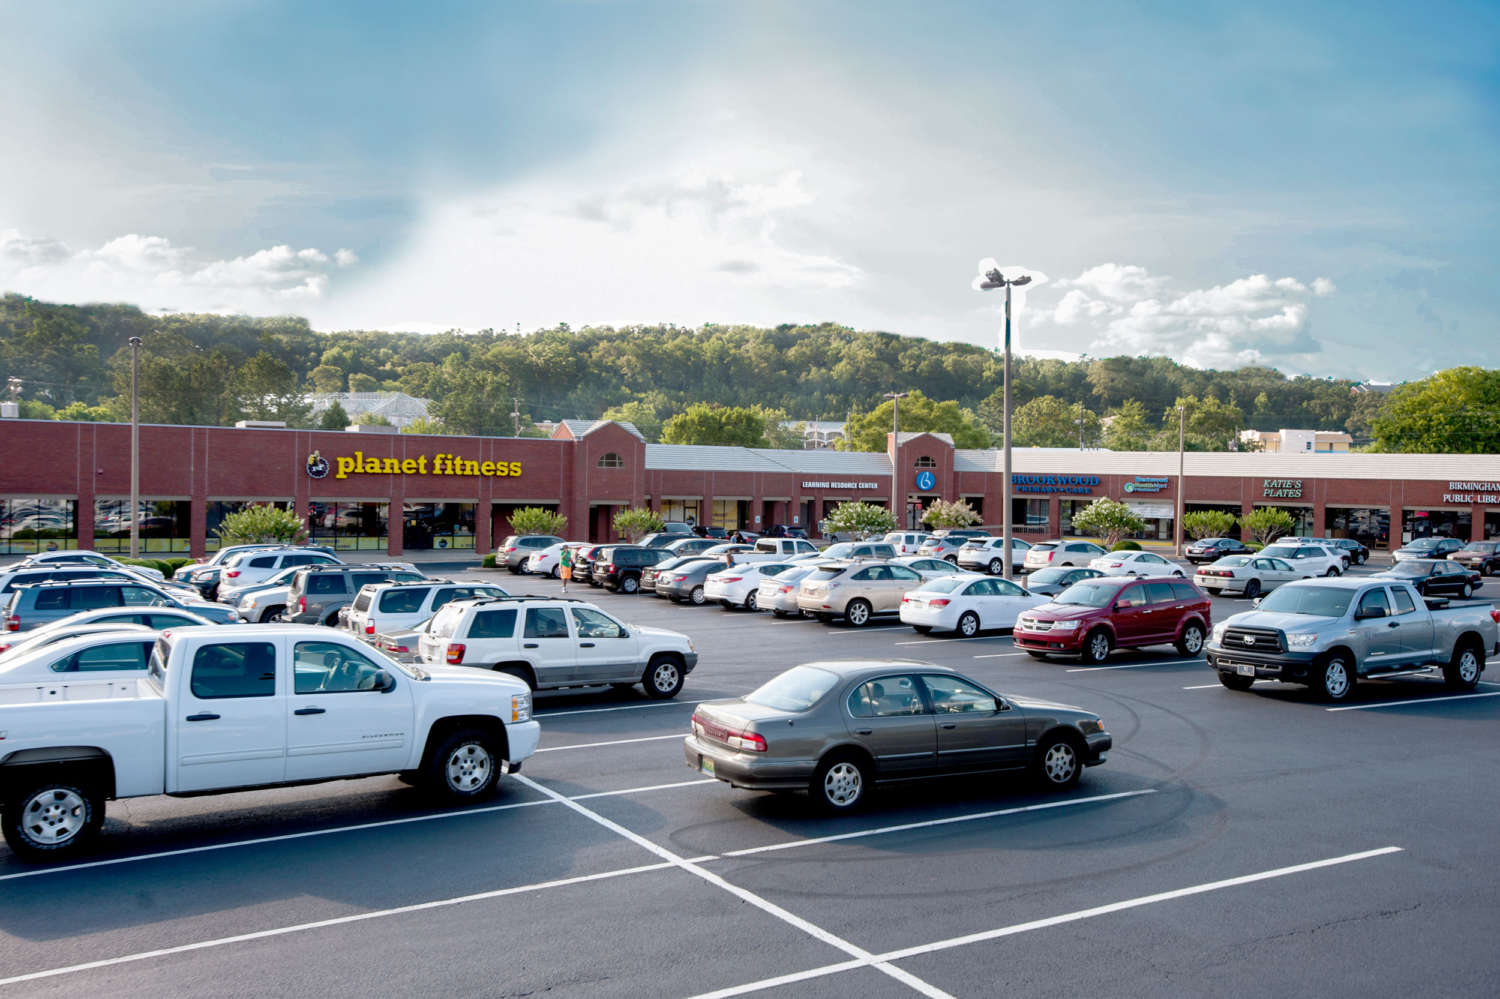 Birmingham News – Baltimore Company Buys Planet Fitness Anchored Shopping Center for $8.4 Million -